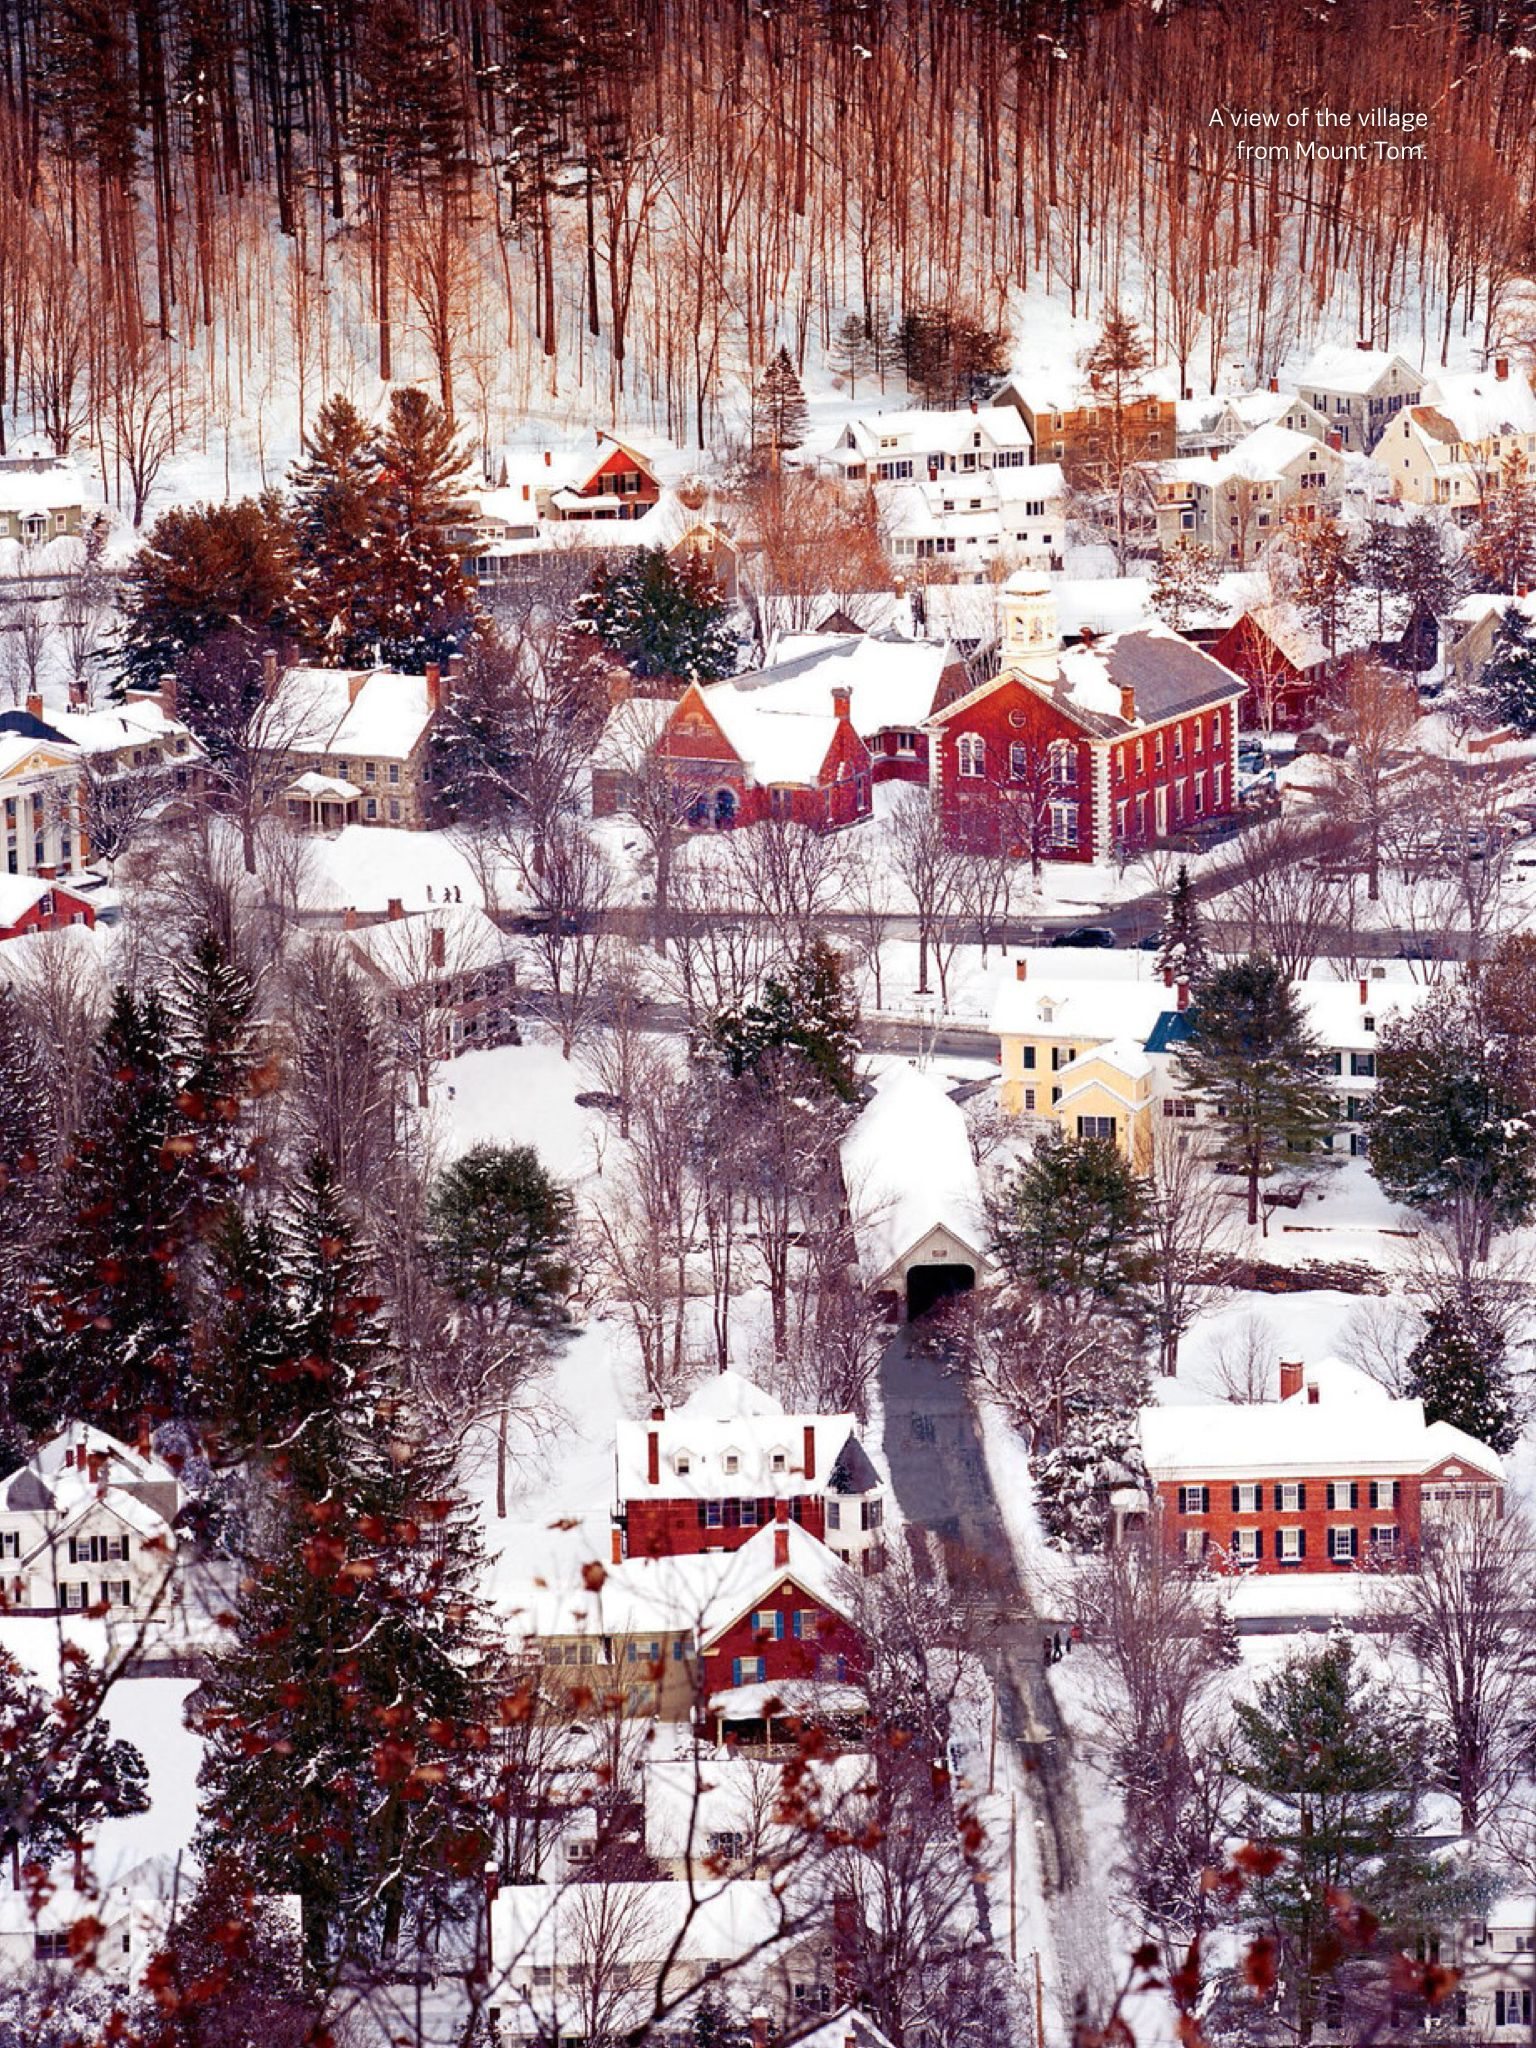 A Christmas In Vermont.Real Christmas Village In Vermont Christmas In 2019